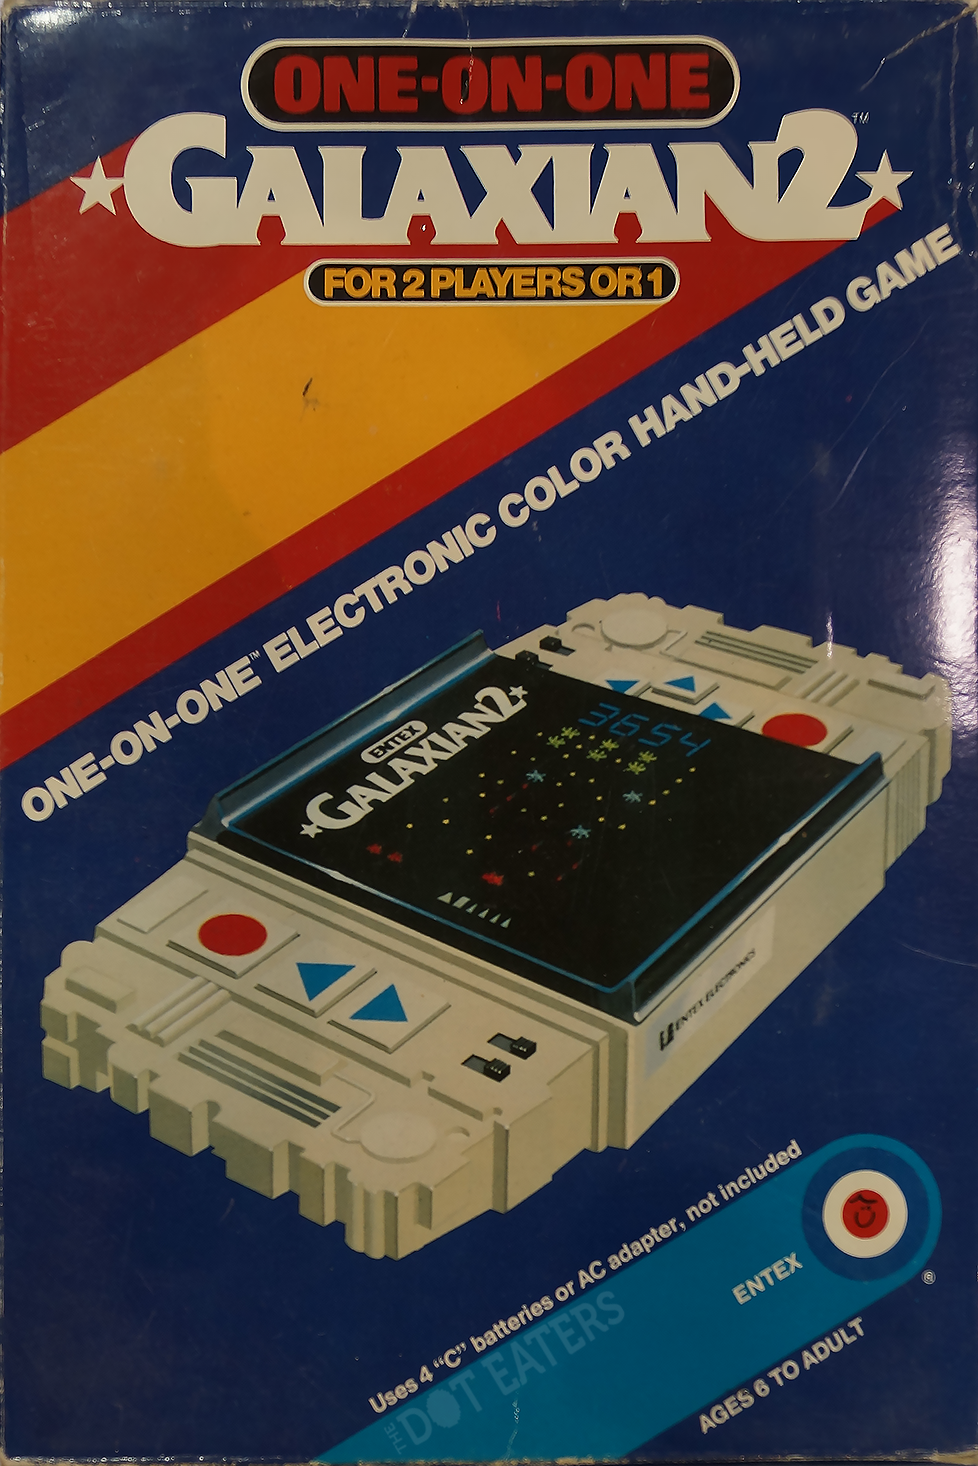 Box for Galaxian 2, an electronic LED game by Entex 1981